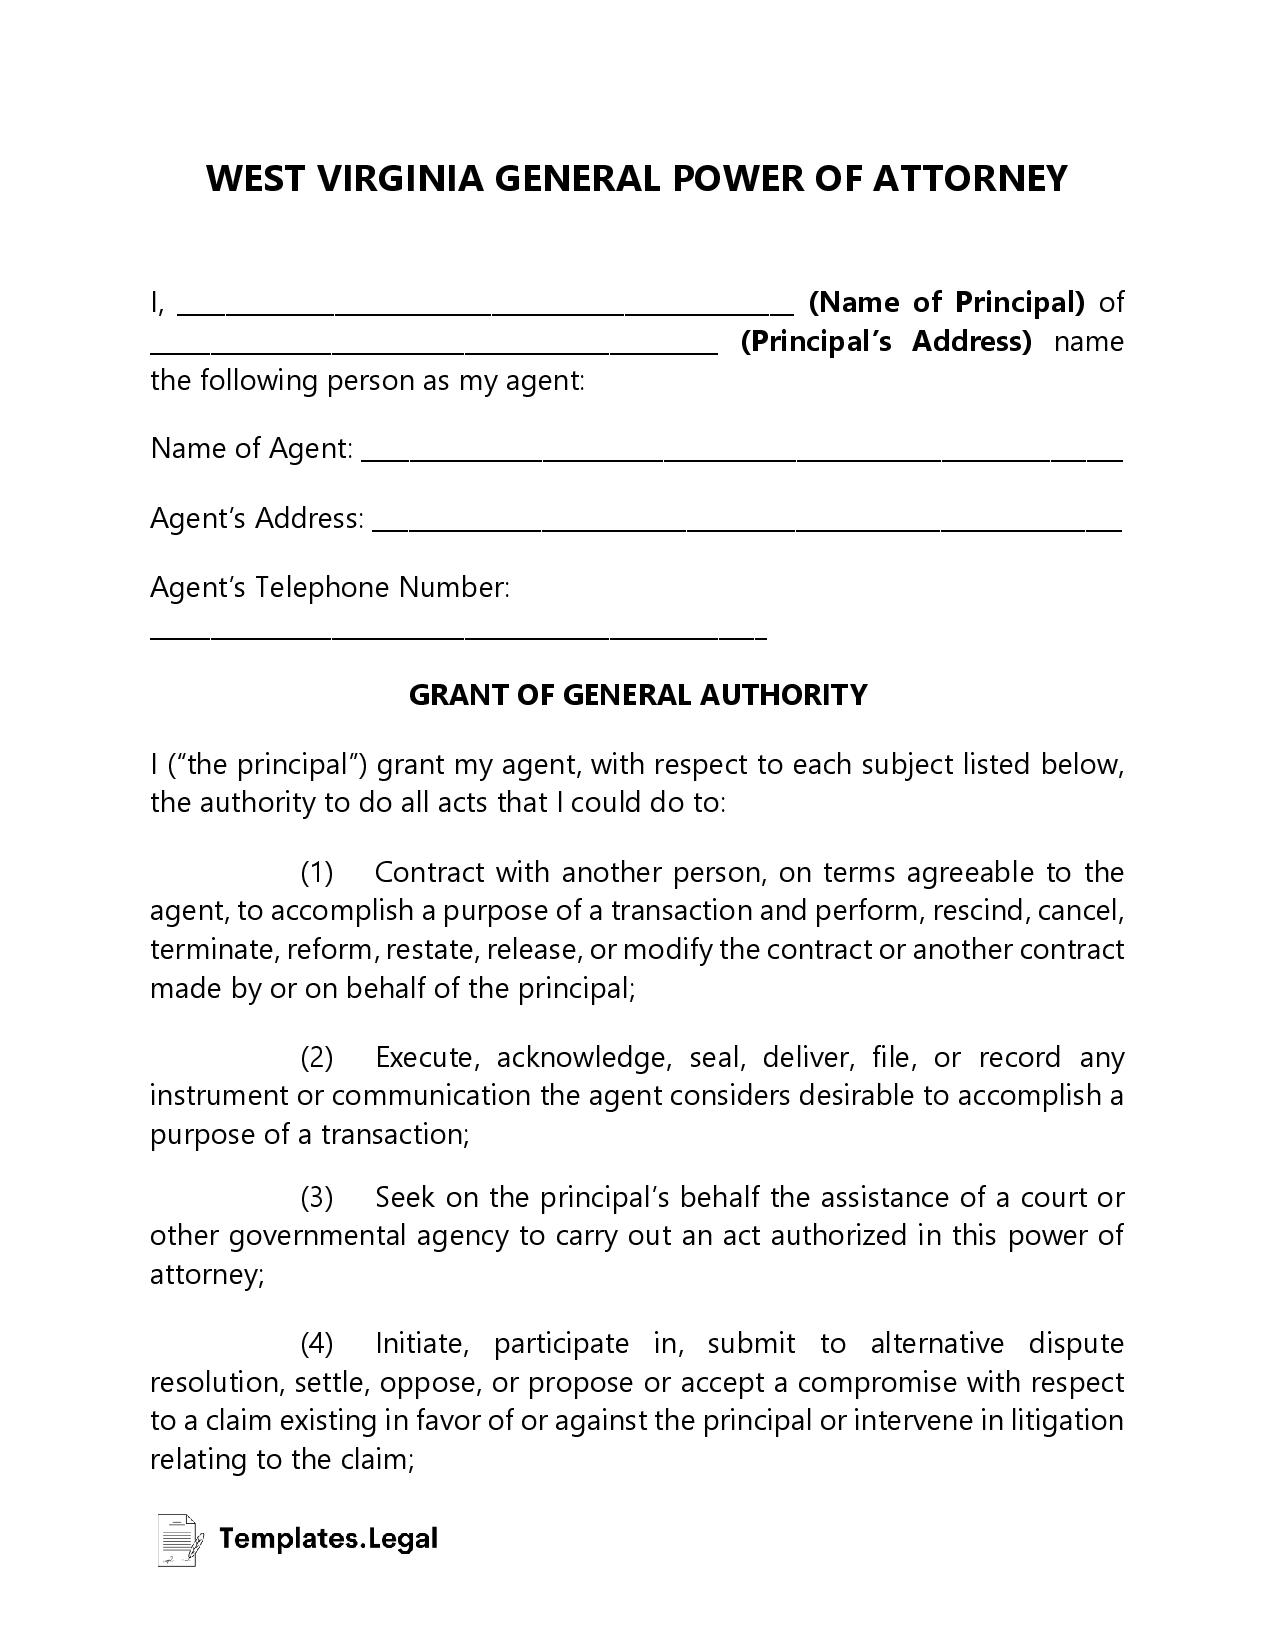 West Virginia General Power of Attorney - Templates.Legal